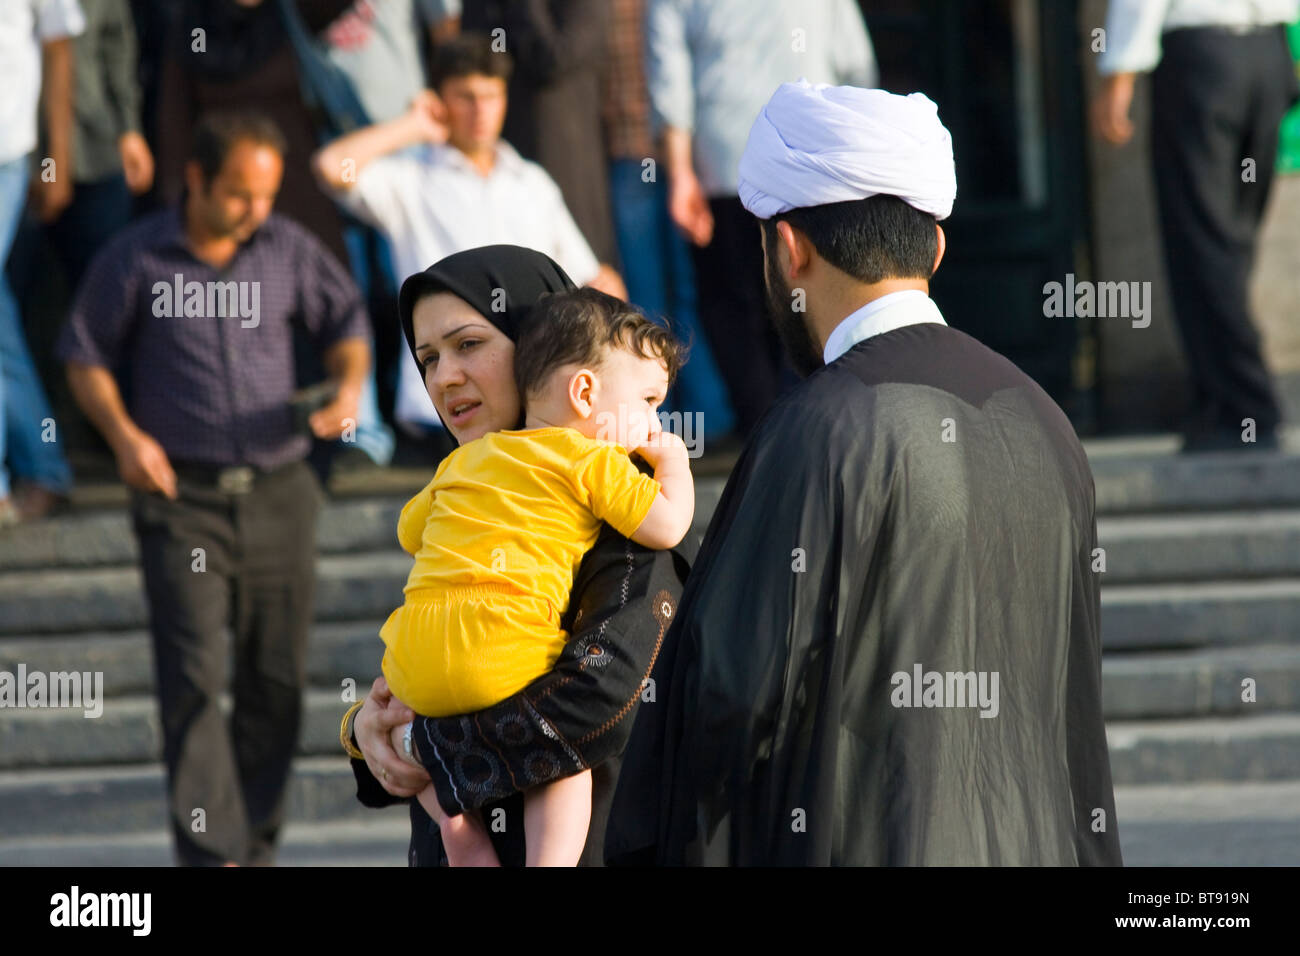 Iranian family in Tehran, Iran - Stock Image